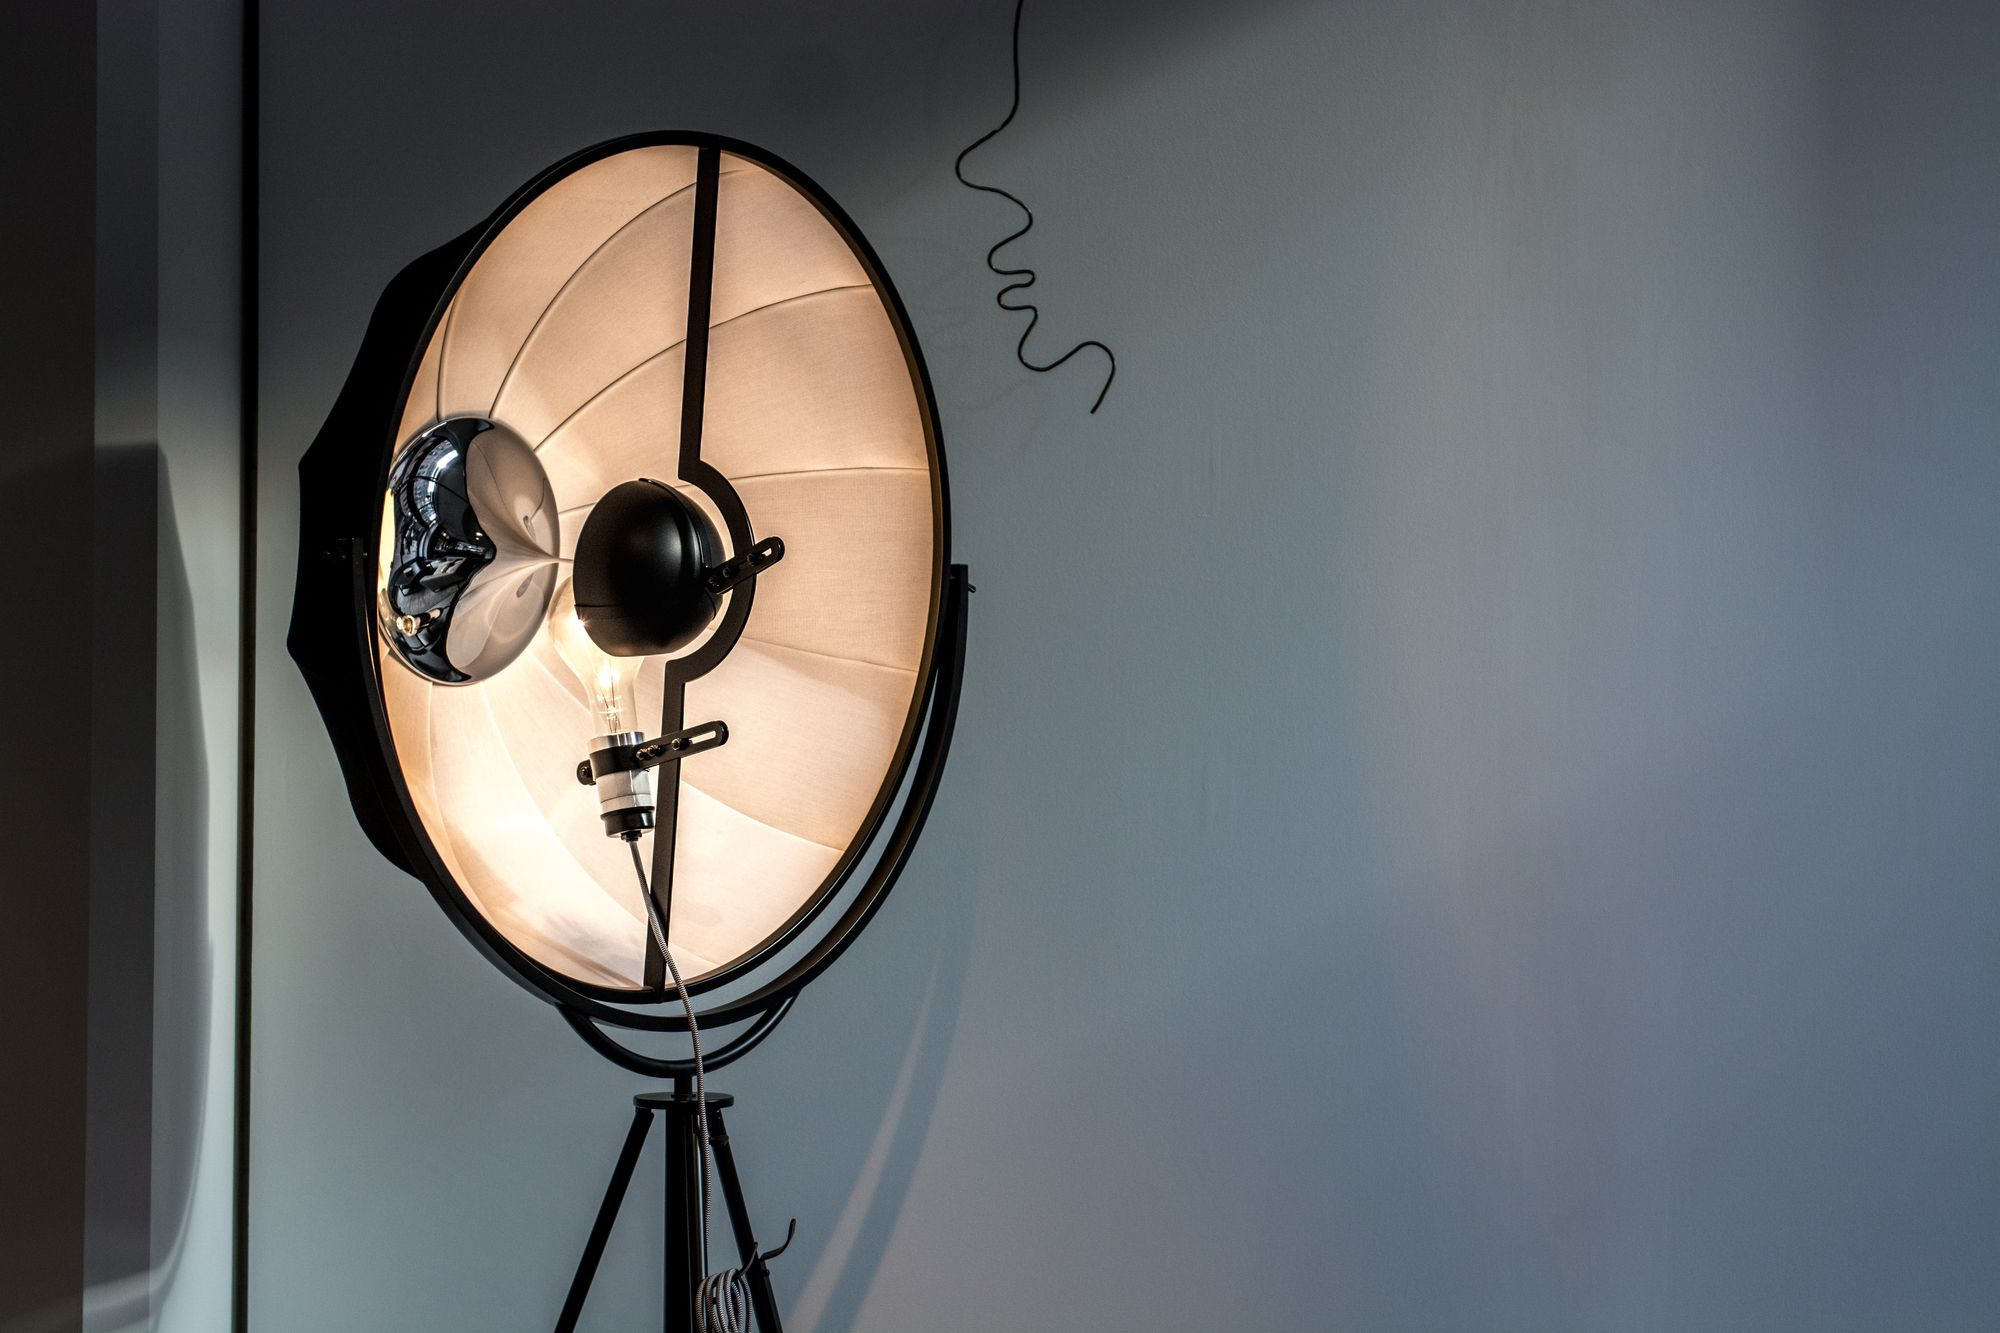 Different lighting equipment for cinematography